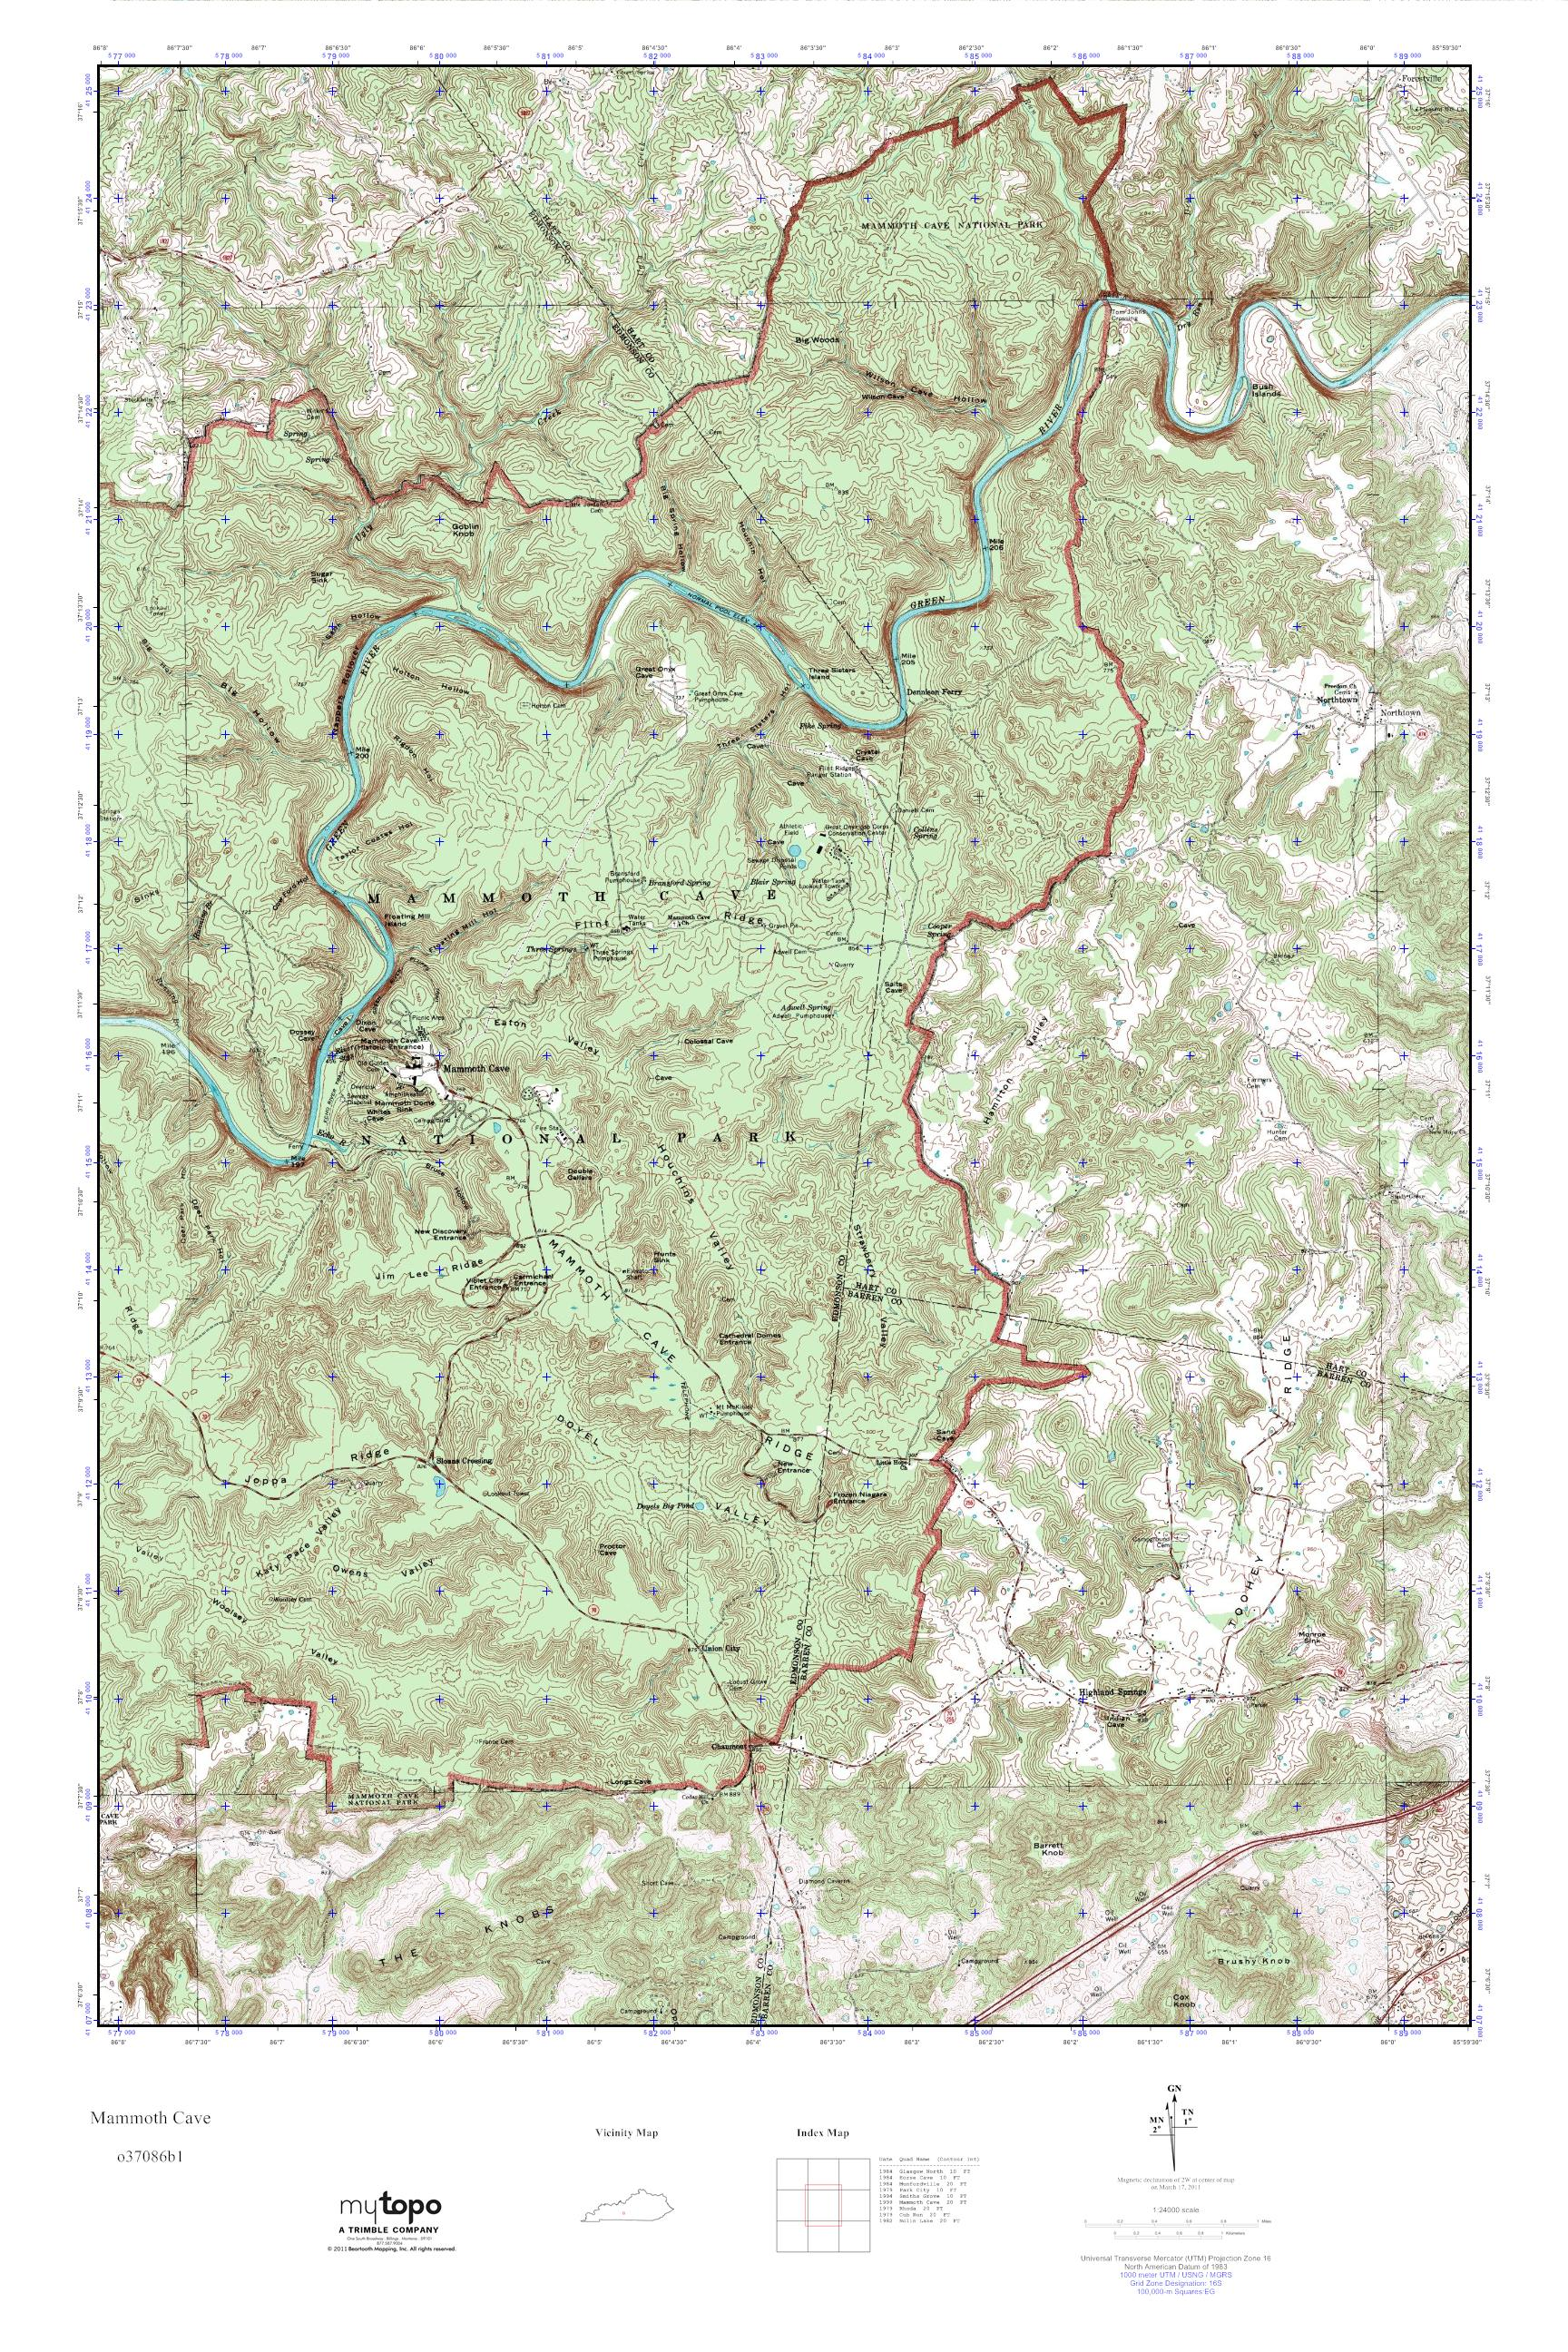 MyTopo Mammoth Cave, Kentucky USGS Quad Topo Map on endless caverns map, cave junction oregon map, wind cave national park map, the land of painted caves map, mammoth caves tennessee, glacier national park, shenandoah national park, carlsbad caverns national park, yellowstone national park on a map, hawaii volcanoes national park, great smoky mountains national park, colorado river map, sequoia national park, crater lake national park, u.s. forest map, grand canyon national park, jewel cave national monument, badlands national park, bigfoot cave map, ky state parks map, mesa verde national park, petrified forest map, wonder cave map, acadia national park, cosmic cavern map, caves in new mexico map, black canyon of the gunnison map, sylvan cave map, timpanogos cave national monument map, hot springs national park, olympic national park, great onyx cave map, cuyahoga valley national park, yosemite national park, redwood national and state parks, cave of the winds map, wind cave national park, mountain river cave vietnam map,